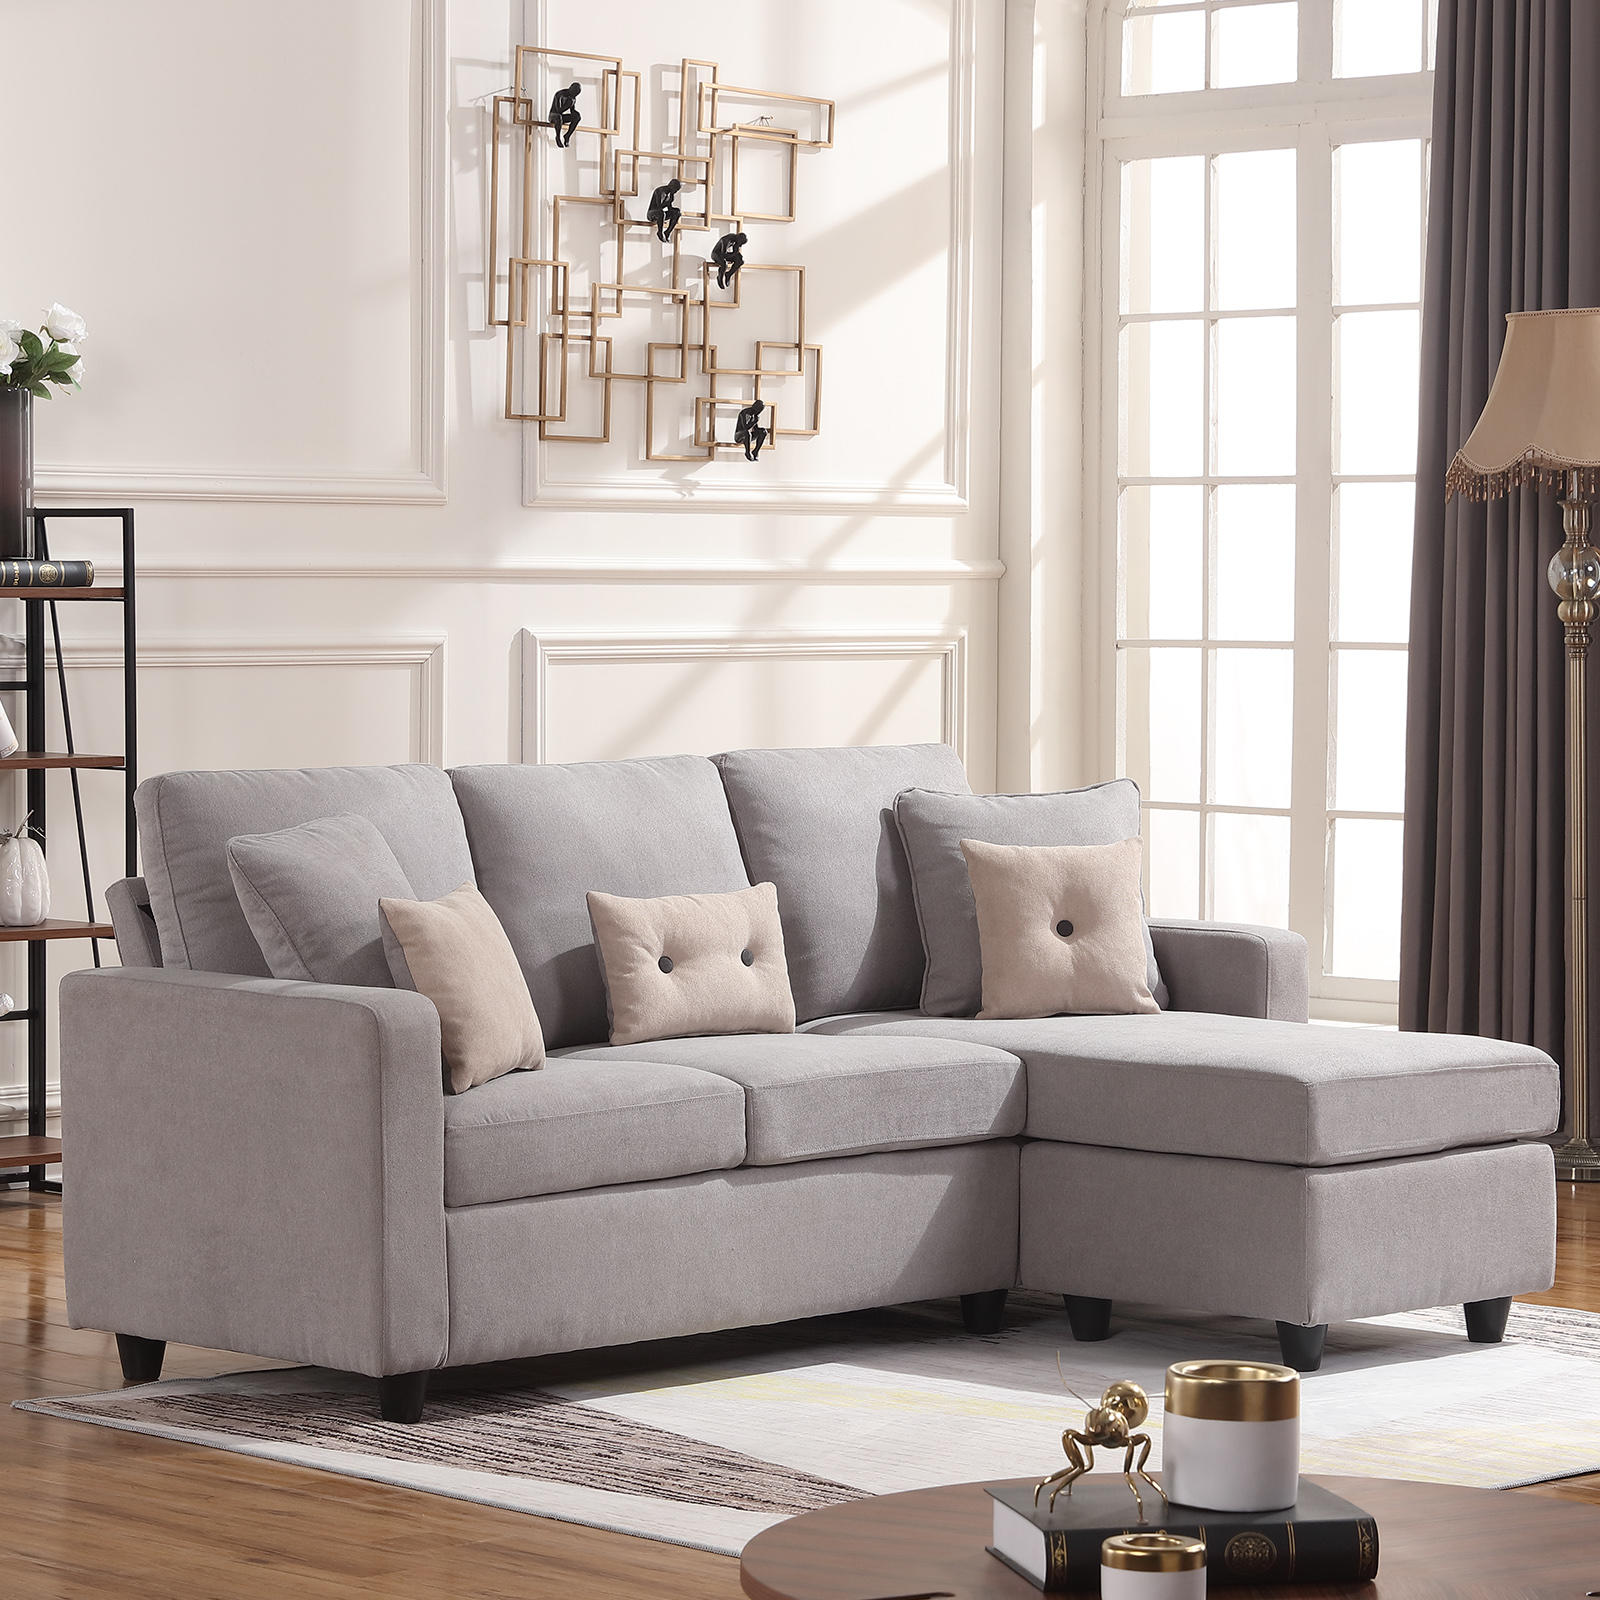 Light Grey Sectional Fabric Sofa L-Shaped Couch W ...